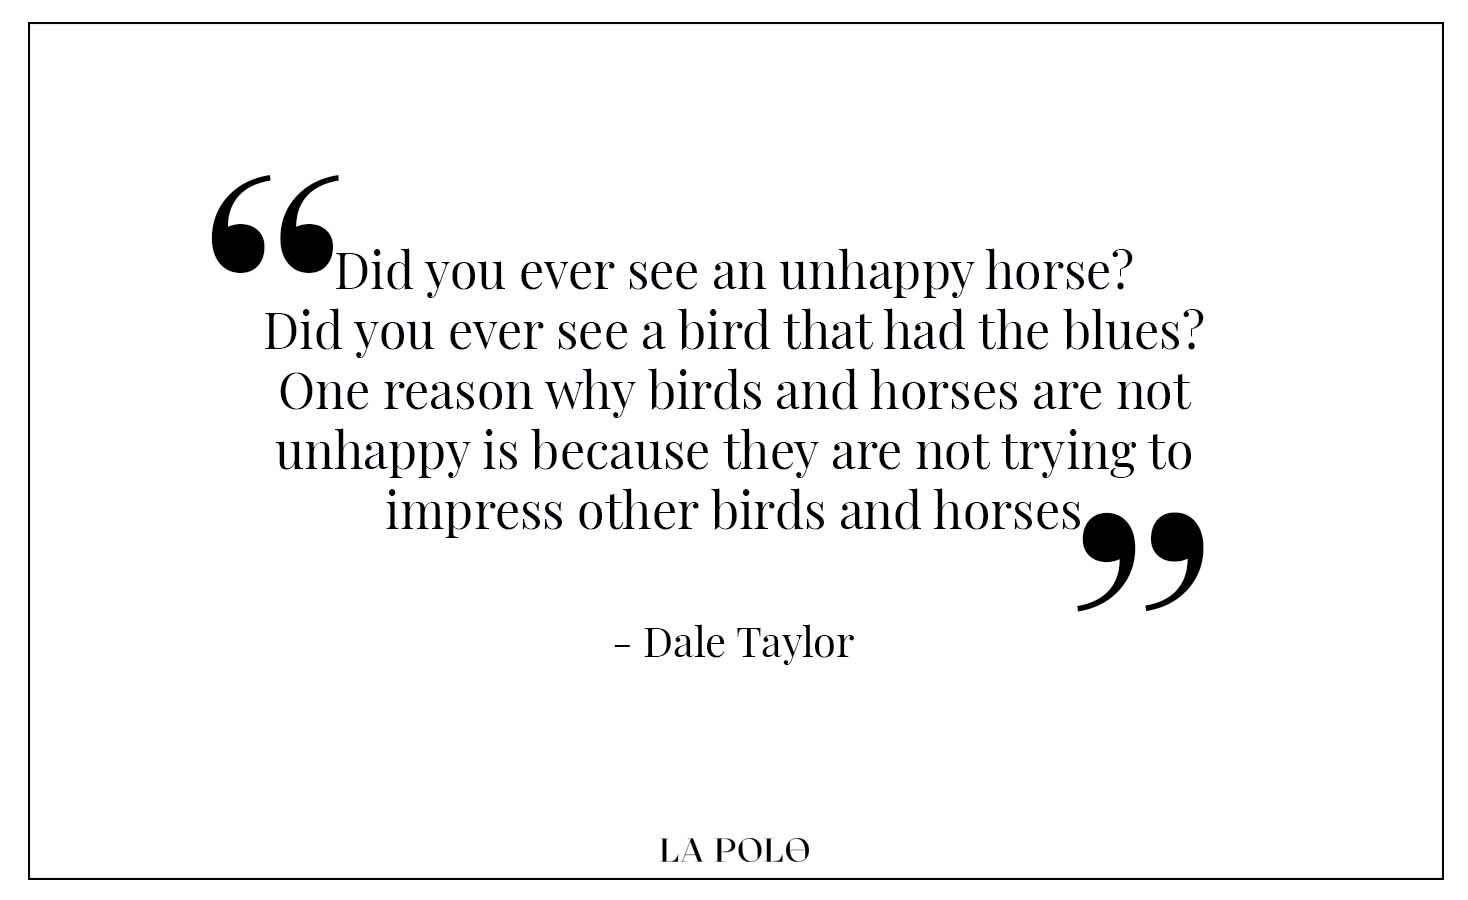 Dale Taylor quotes